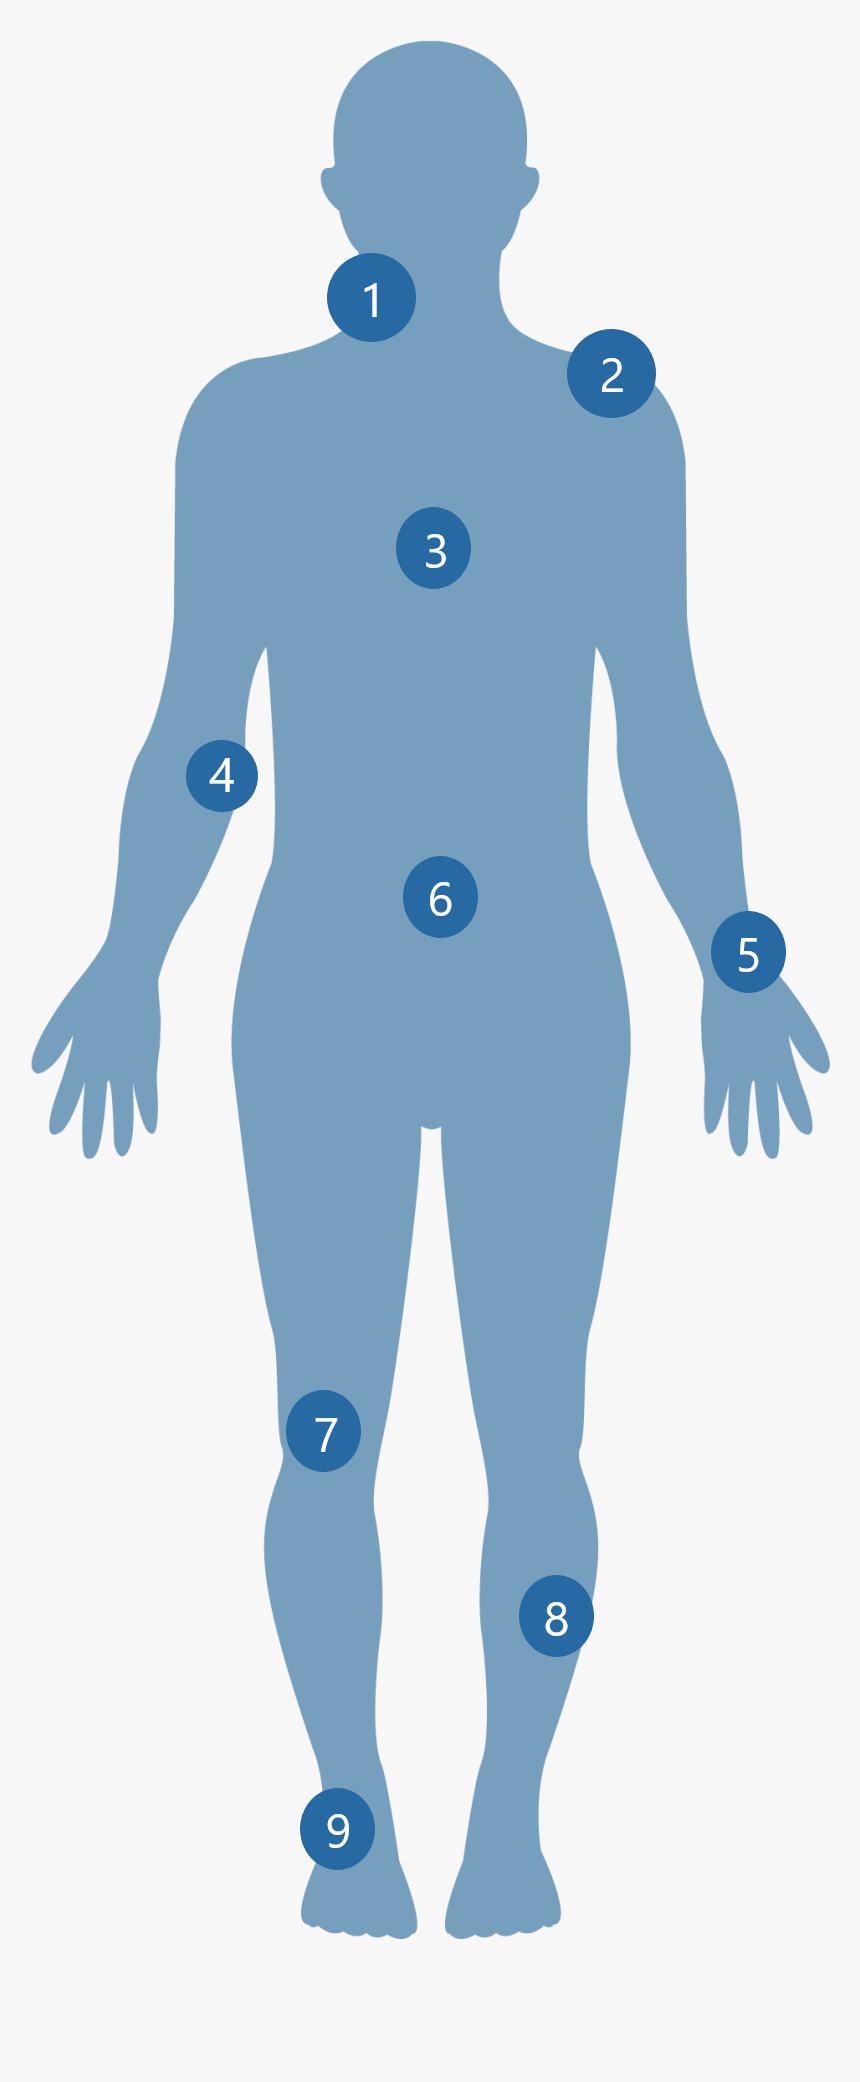 11-119289_human-body-vector-transparent-healthy-body-png-png